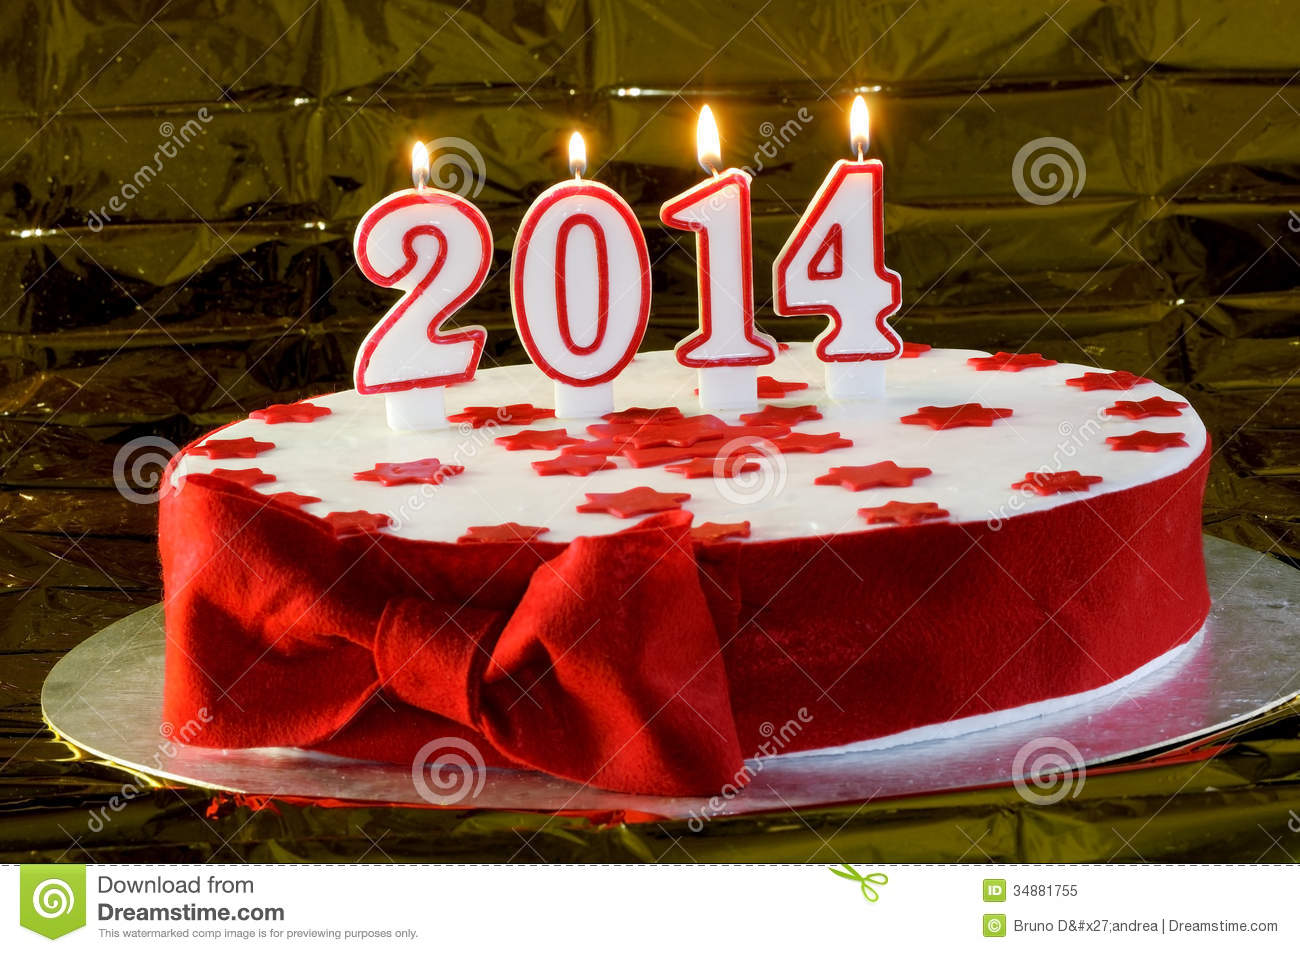 Download New Year Cake Images : Beautiful Cake For The New Year Royalty Free Stock Photo ...